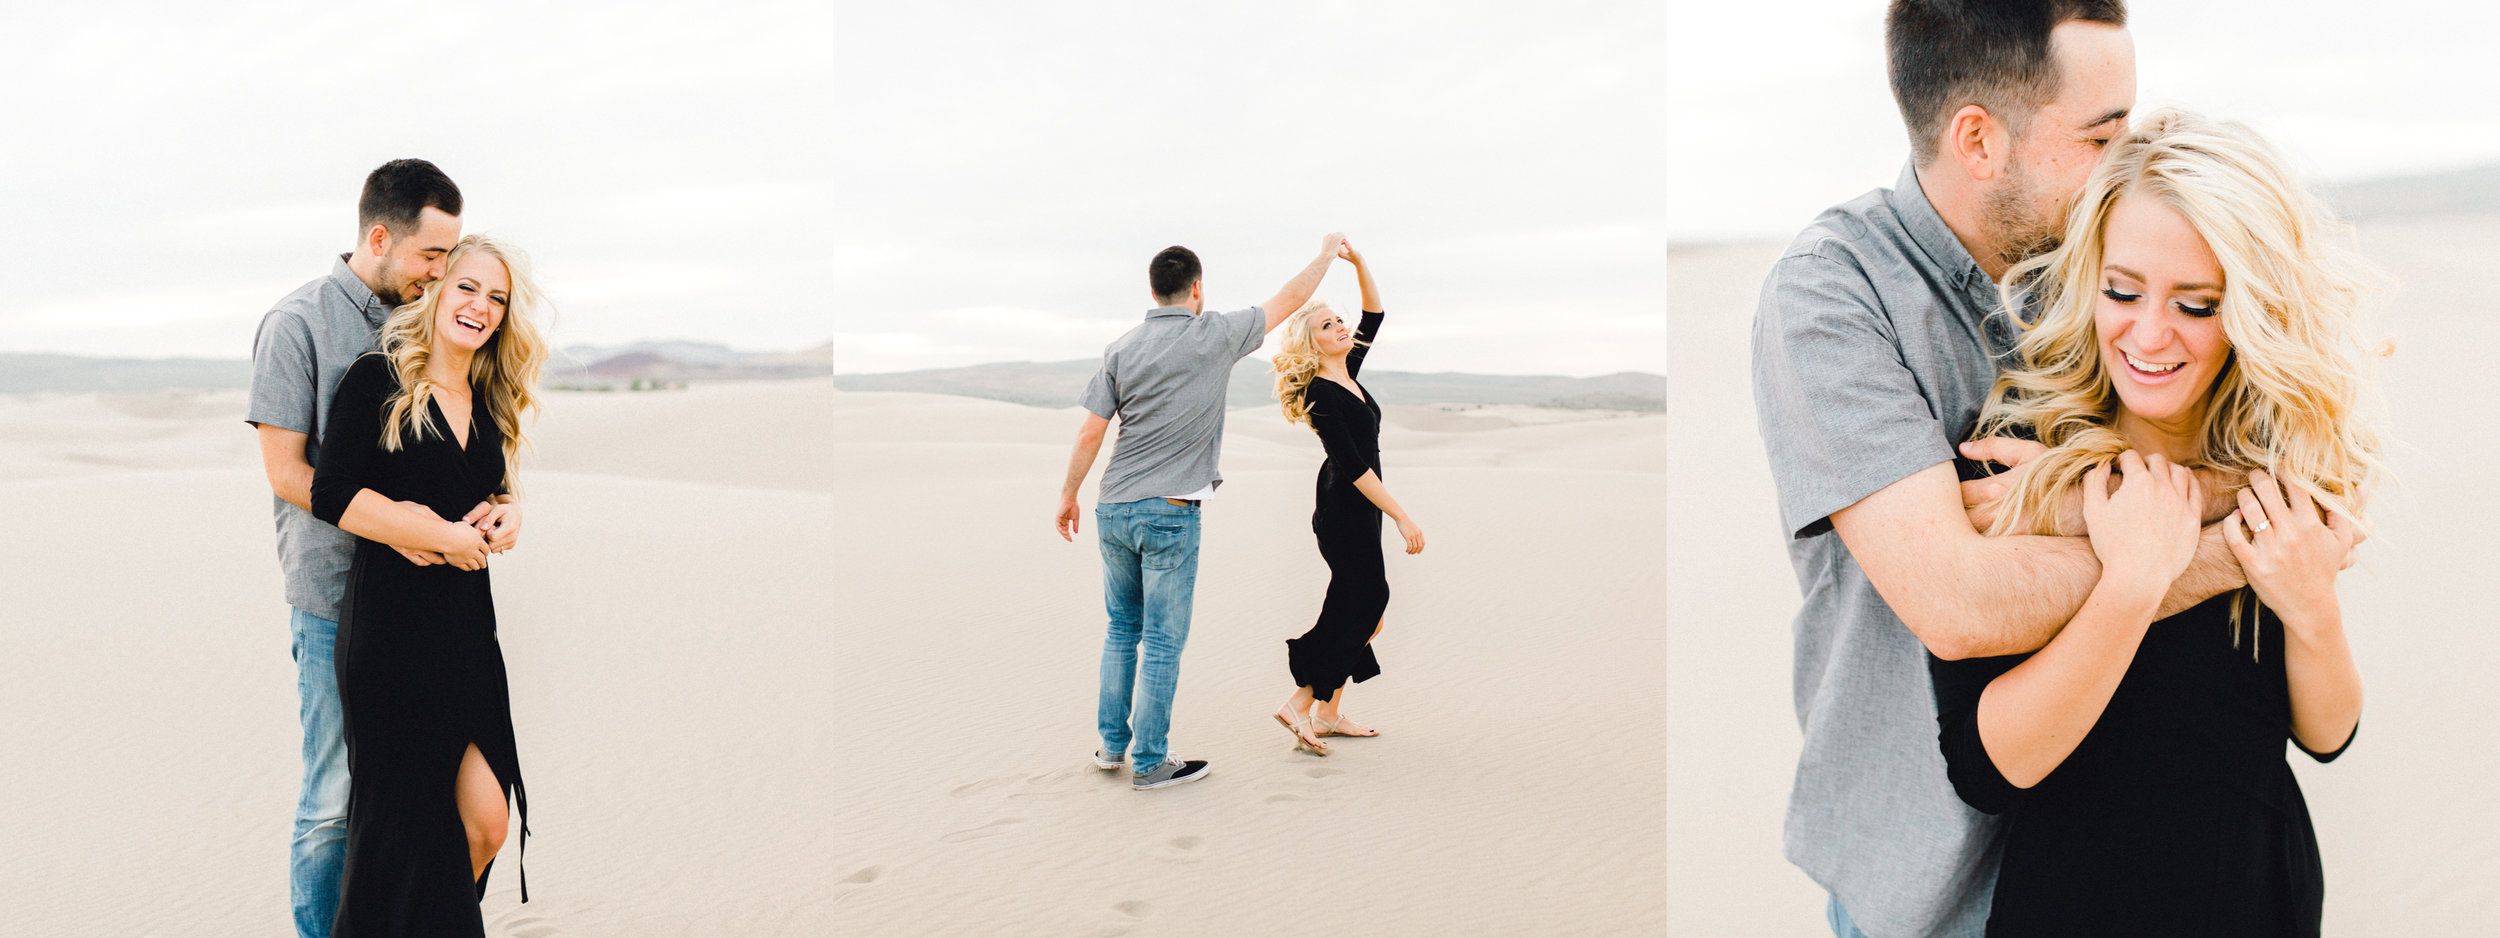 rexburg-idaho-sand-dunes-engagement-photographer-august-trevor13.jpg